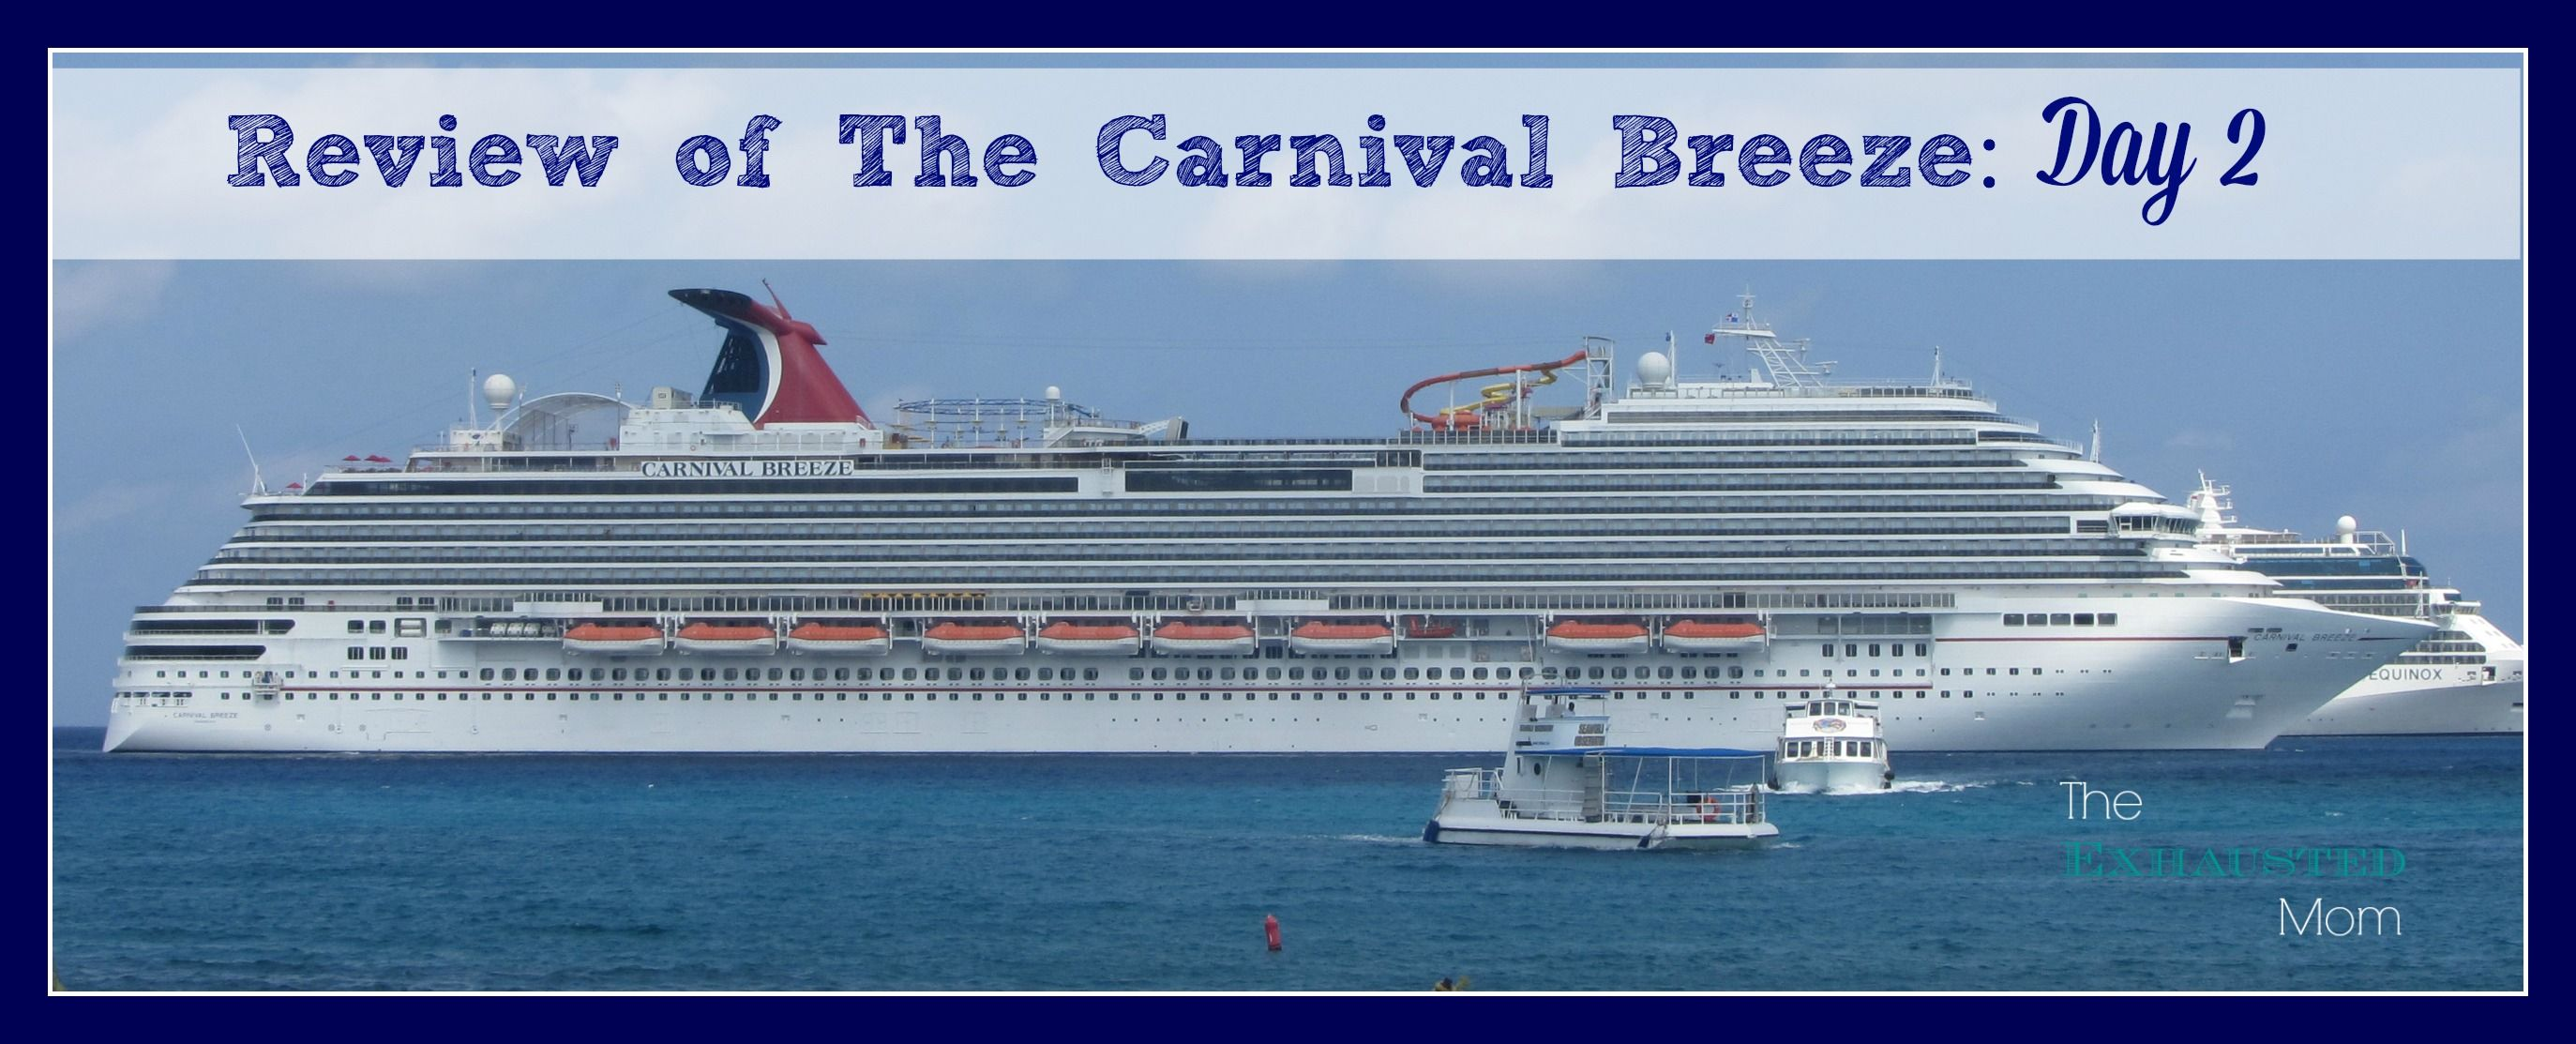 For a fun filled vacation perfect for any family, The Carnival Breeze is a MUST!